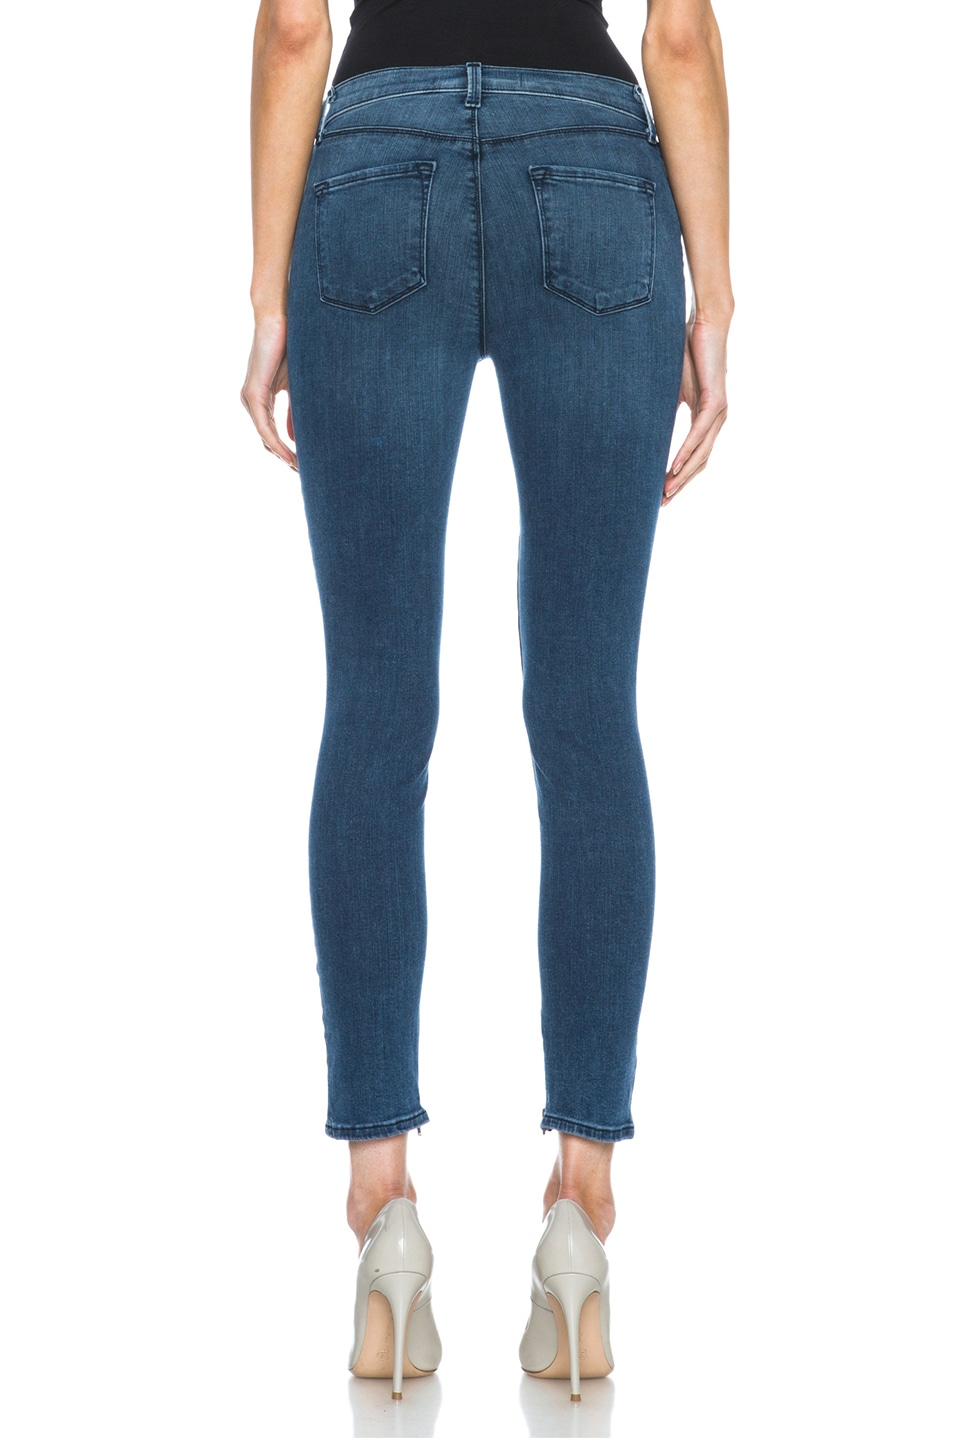 Image 4 of J Brand Maria Crop Jean with Inside Zipper in Rumor